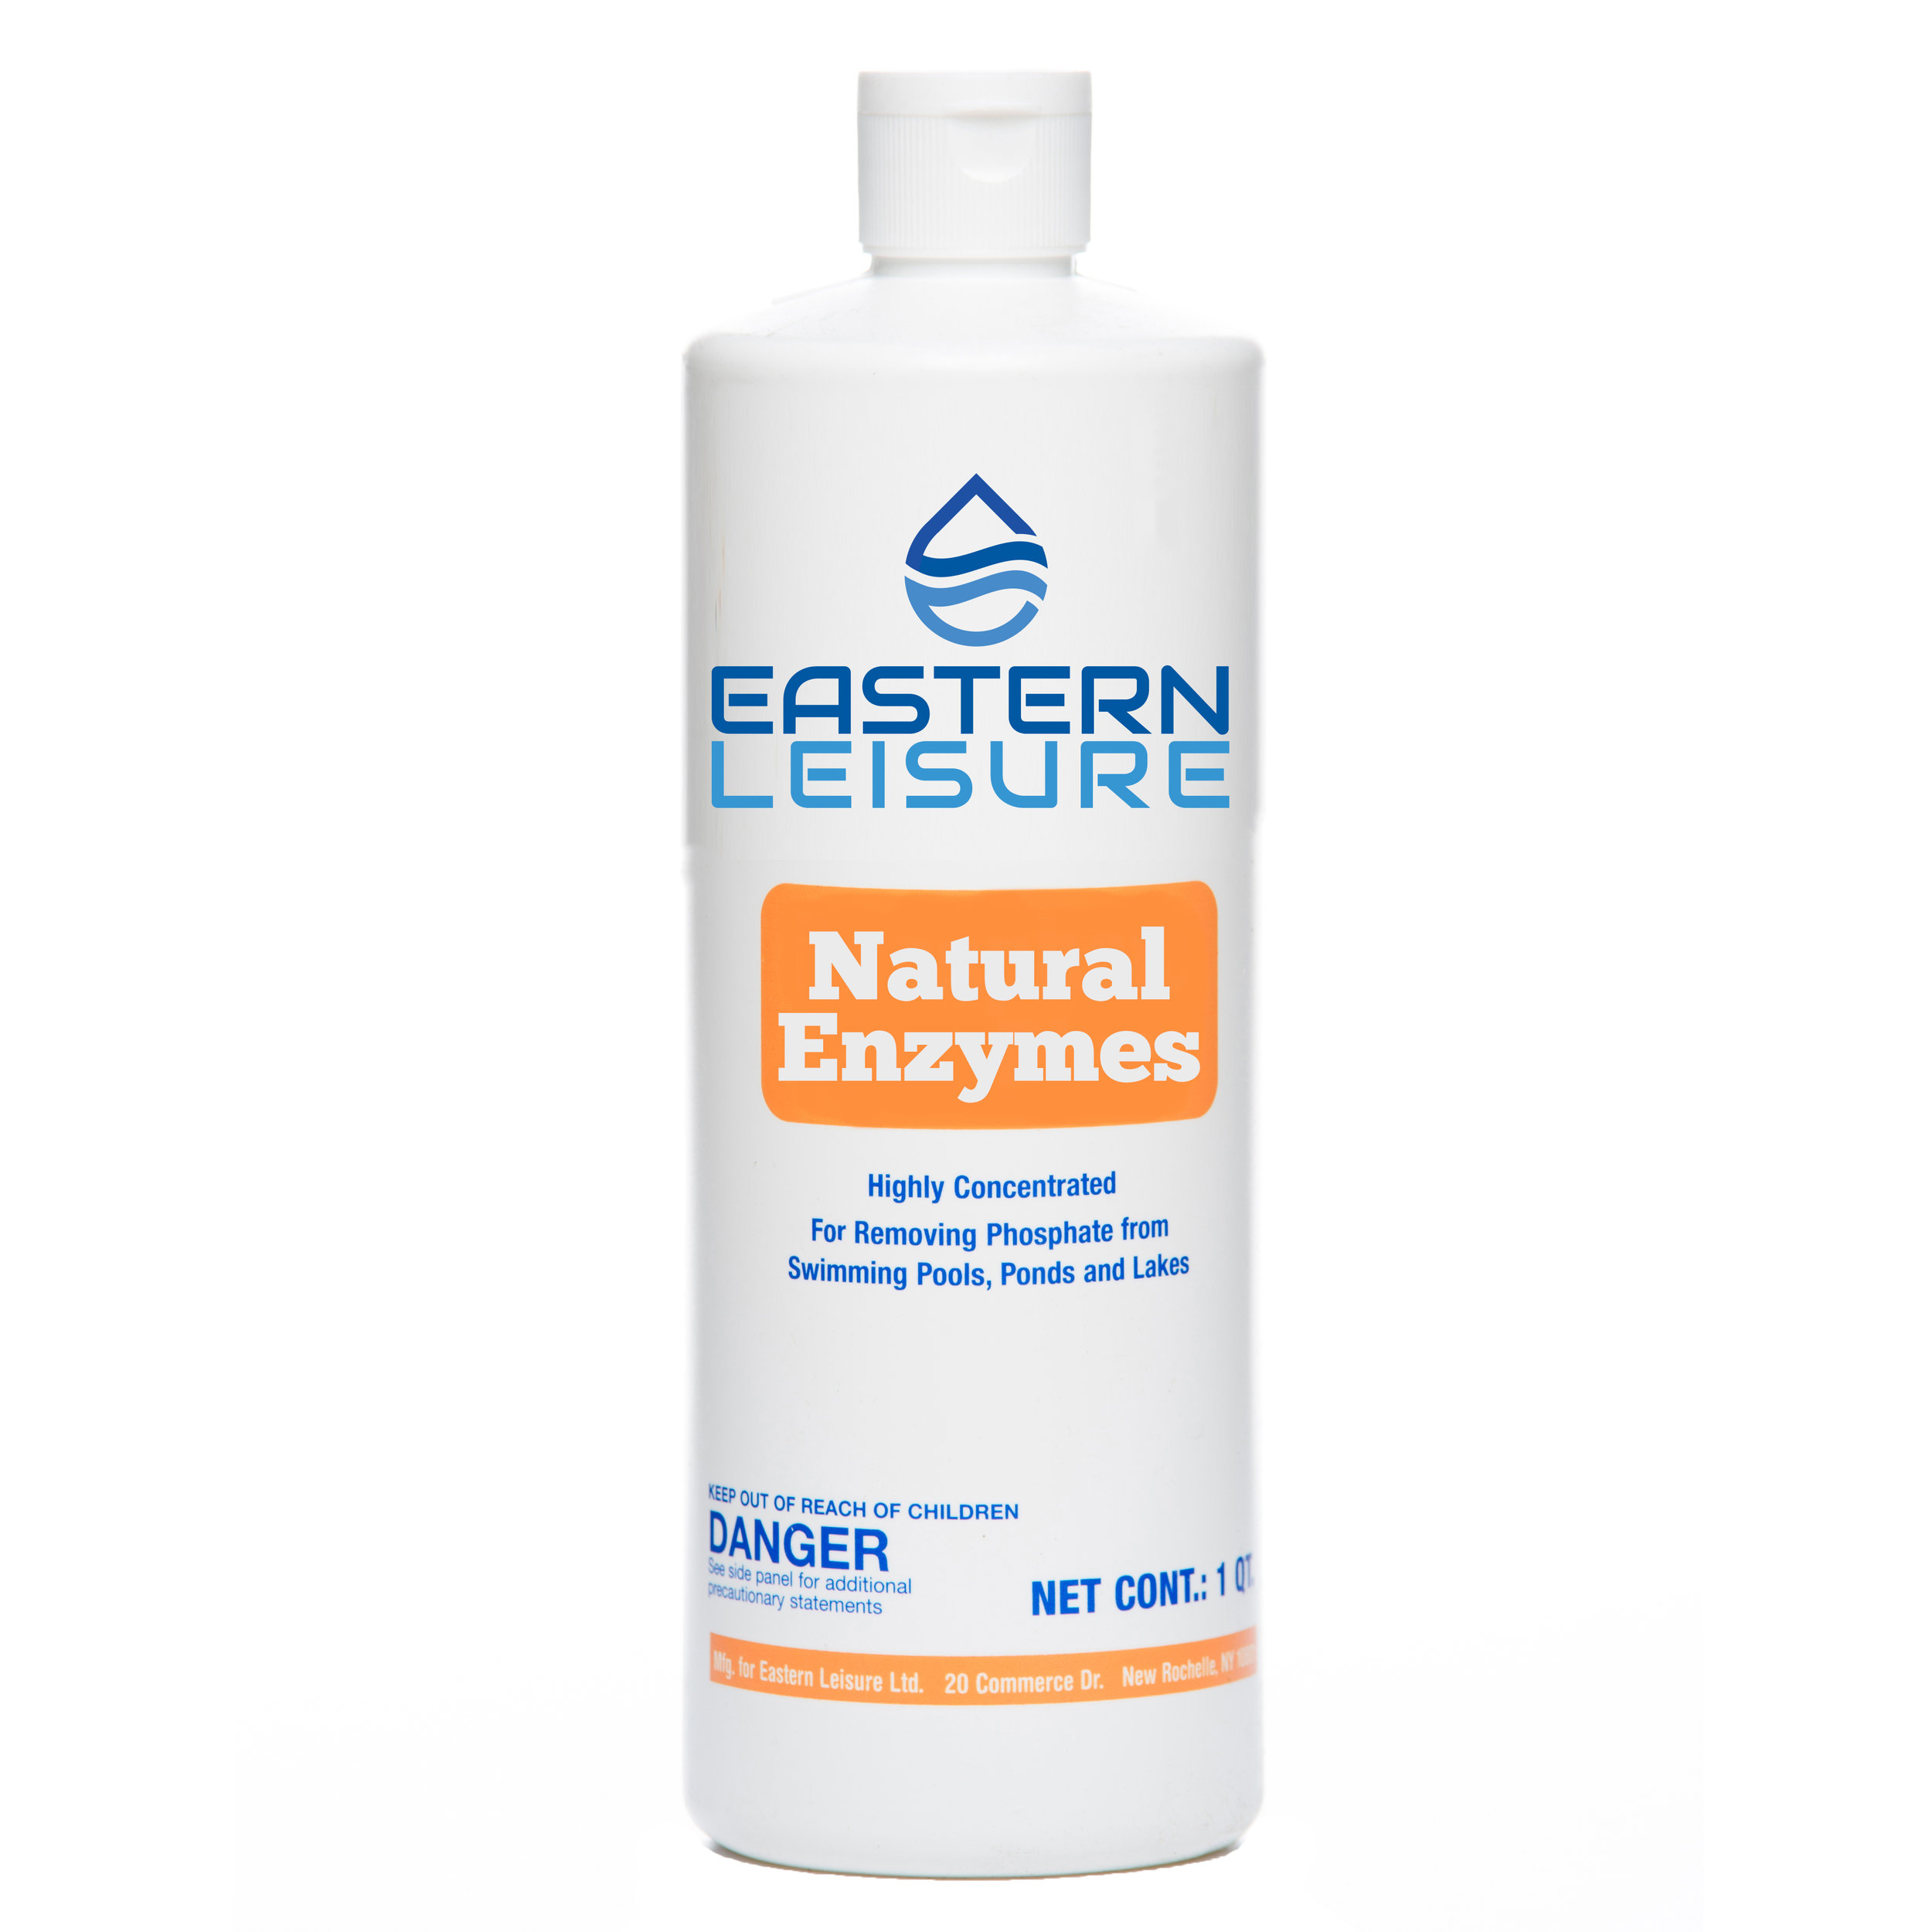 Natural Enzymes   ELP23A - 1 qt. bottle, 12/case  A natural enzyme product that breaks down oils that form scum lines on pool walls while improving filtration.  Dosage: 1 1/2 oz. per 1,000 gal.